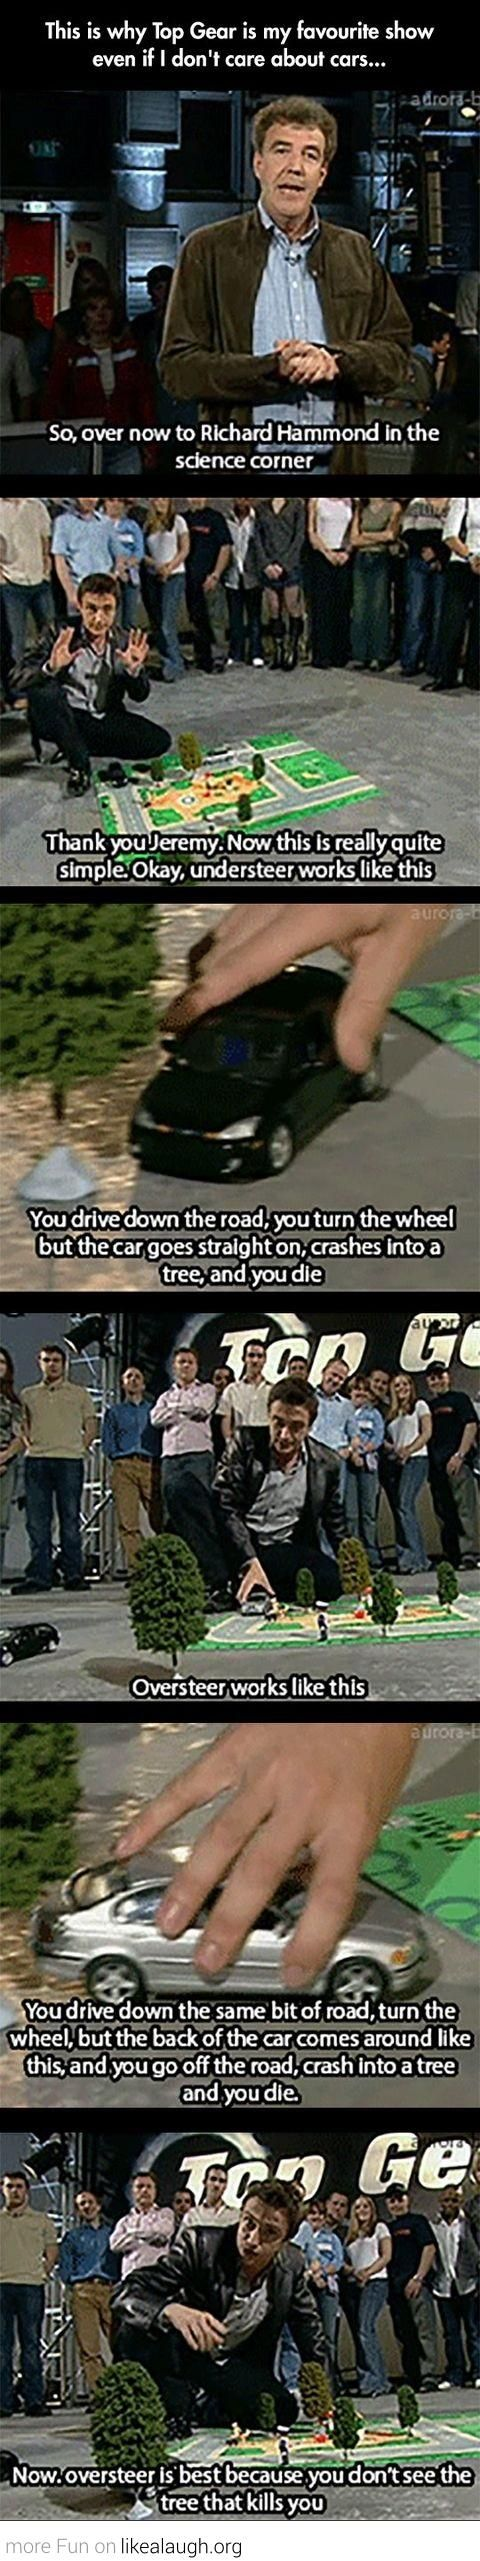 The science corner of Top Gear